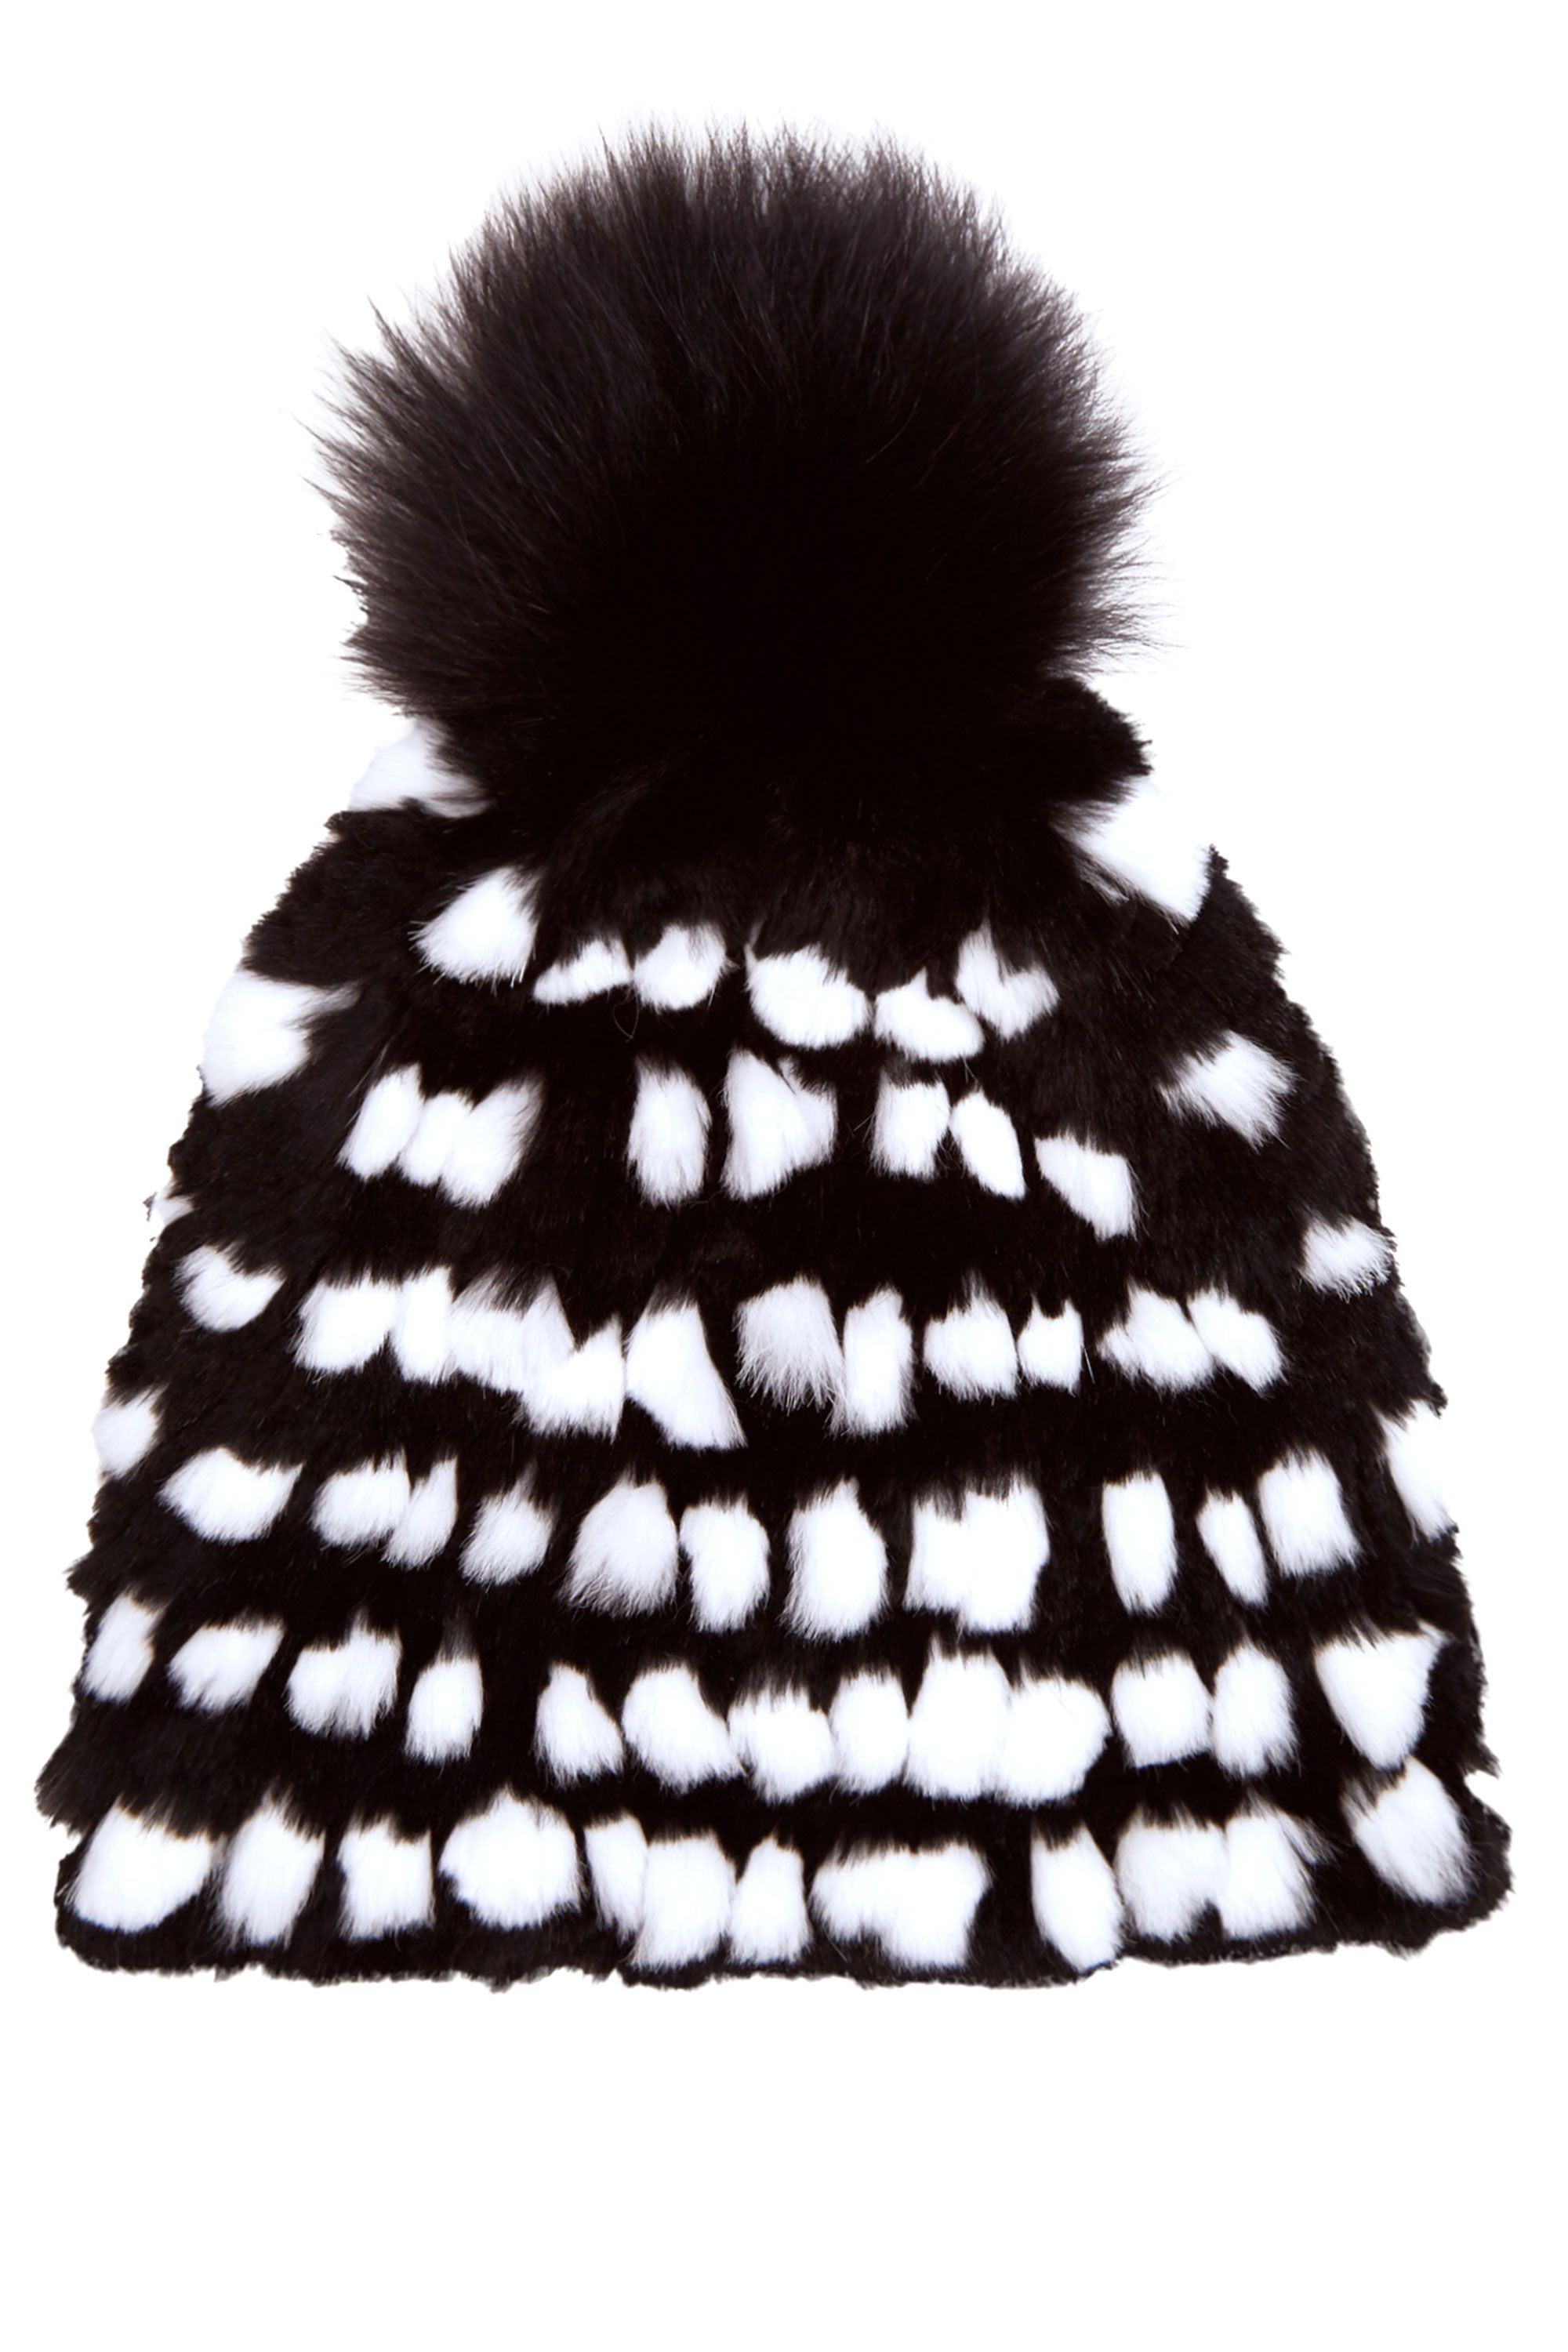 441176608a1 Our edit of the 20 best Winter accessories